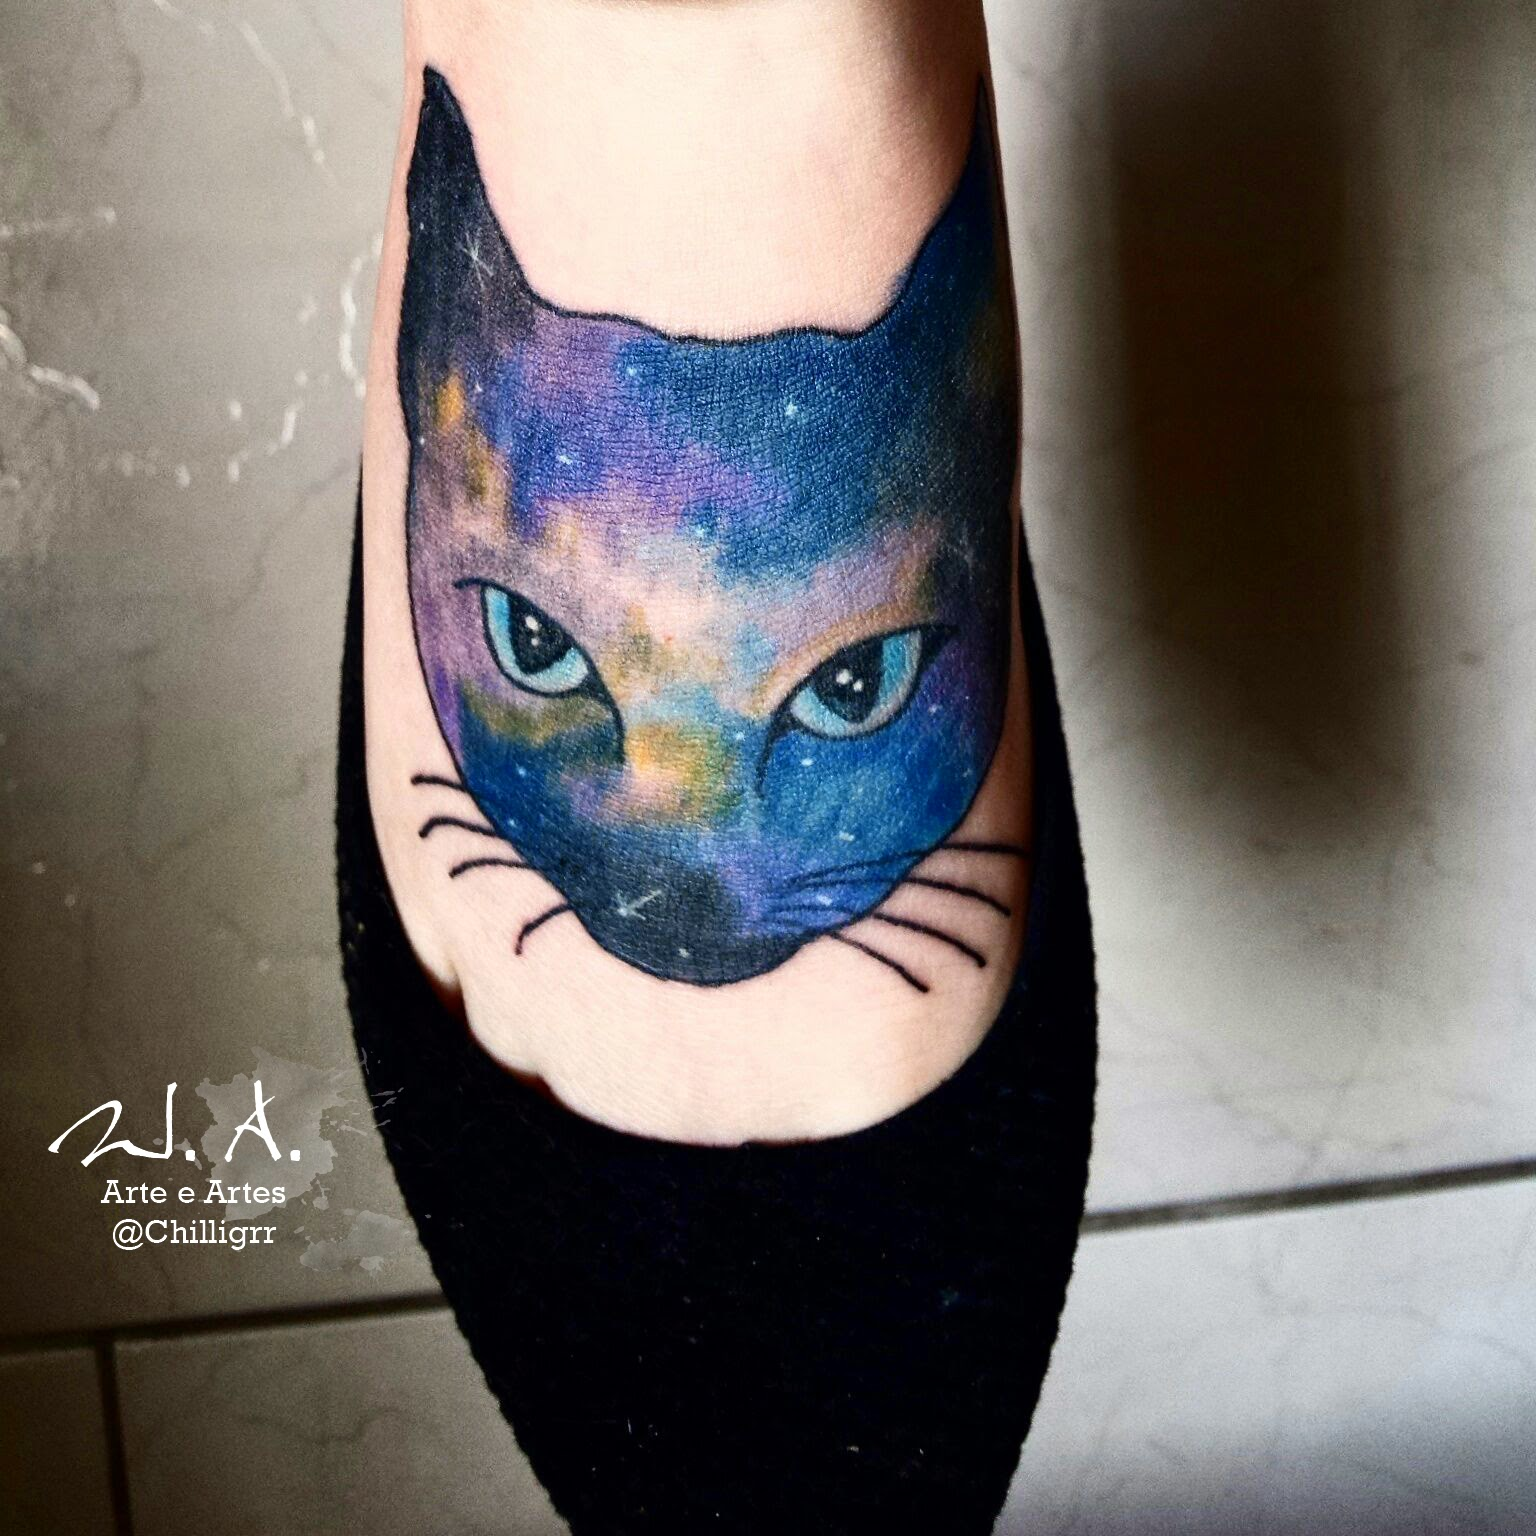 watercolor, watercolor art, watercolor tattoo, tattoo, tatuagem, tatuagem aquarela, painting, pintura, arte, artista, art, curitiba, tatuagem curitiba, estúdio de tatuagem em curitiba, tattoo curitiba, tattoo br, siamese cat tattoo, cat tattoo, siamese cat, gato siamês, desenho de cato, pintura de gato, galaxy tattoo, galaxy cat tattoo, w. albuquerque, chilligrr